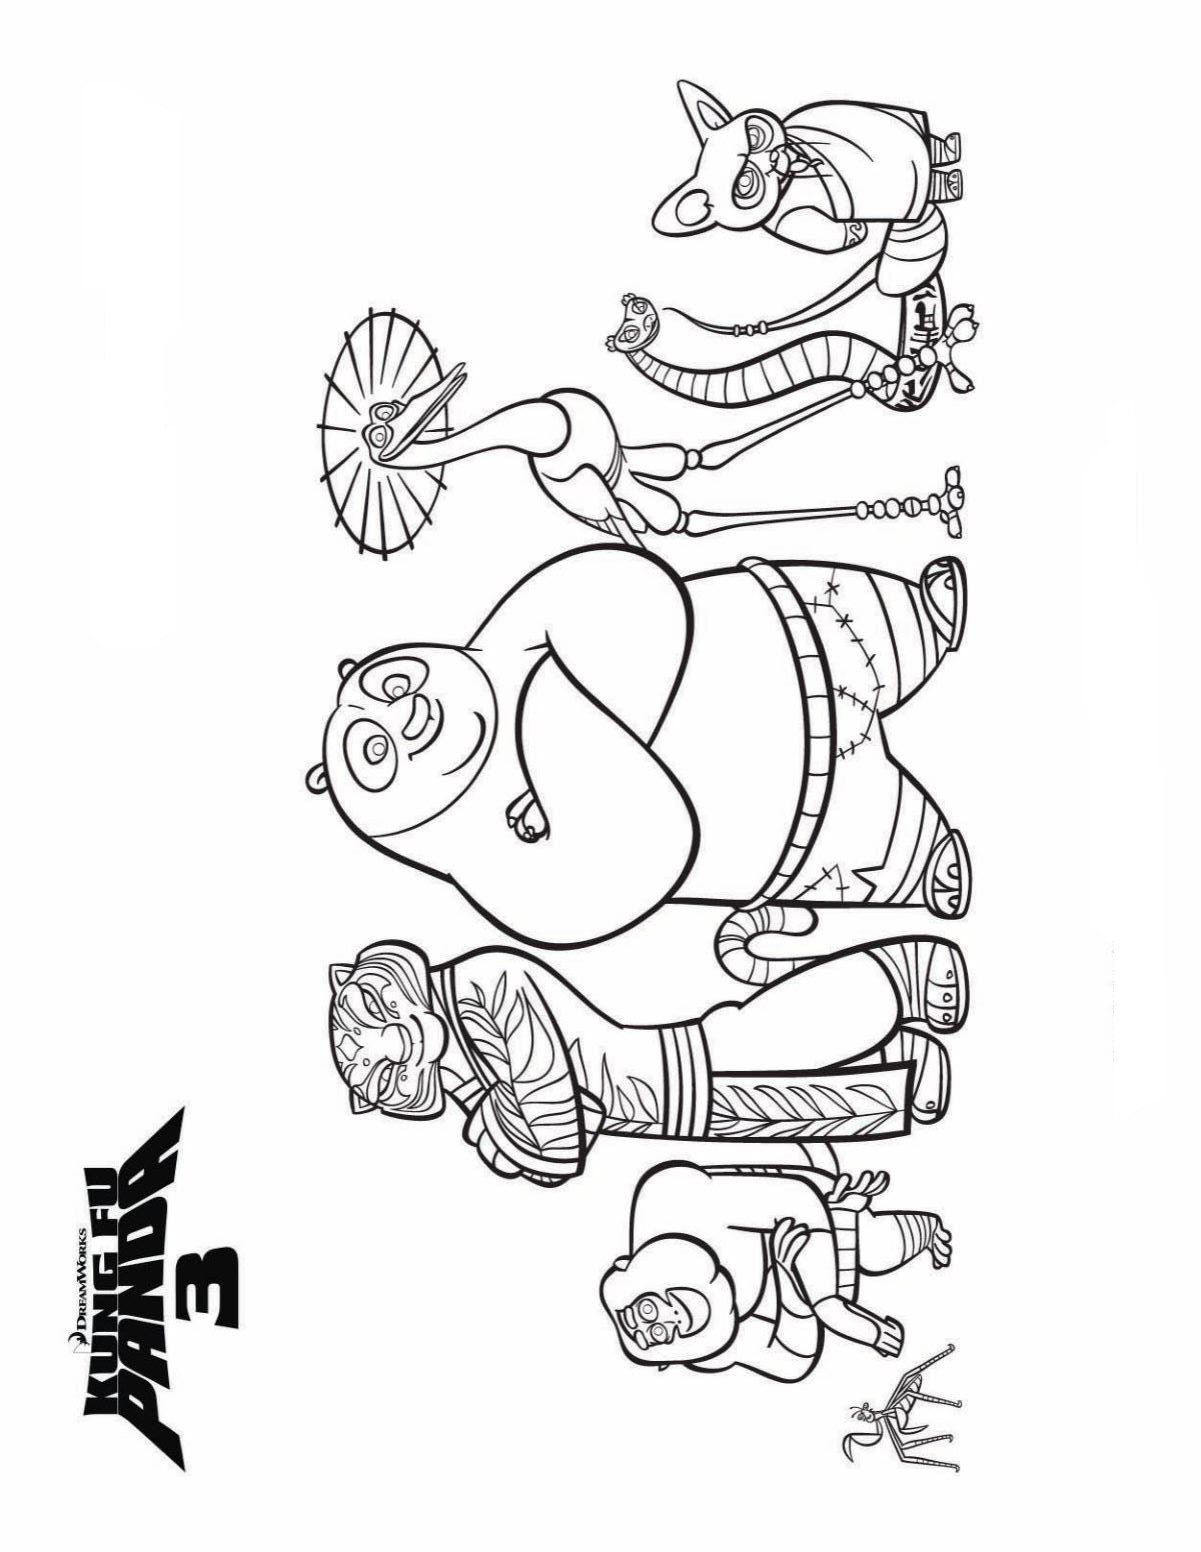 and more of these coloring pages coloring pages of kung fu panda kung fu panda 2 - Panda Pictures To Color